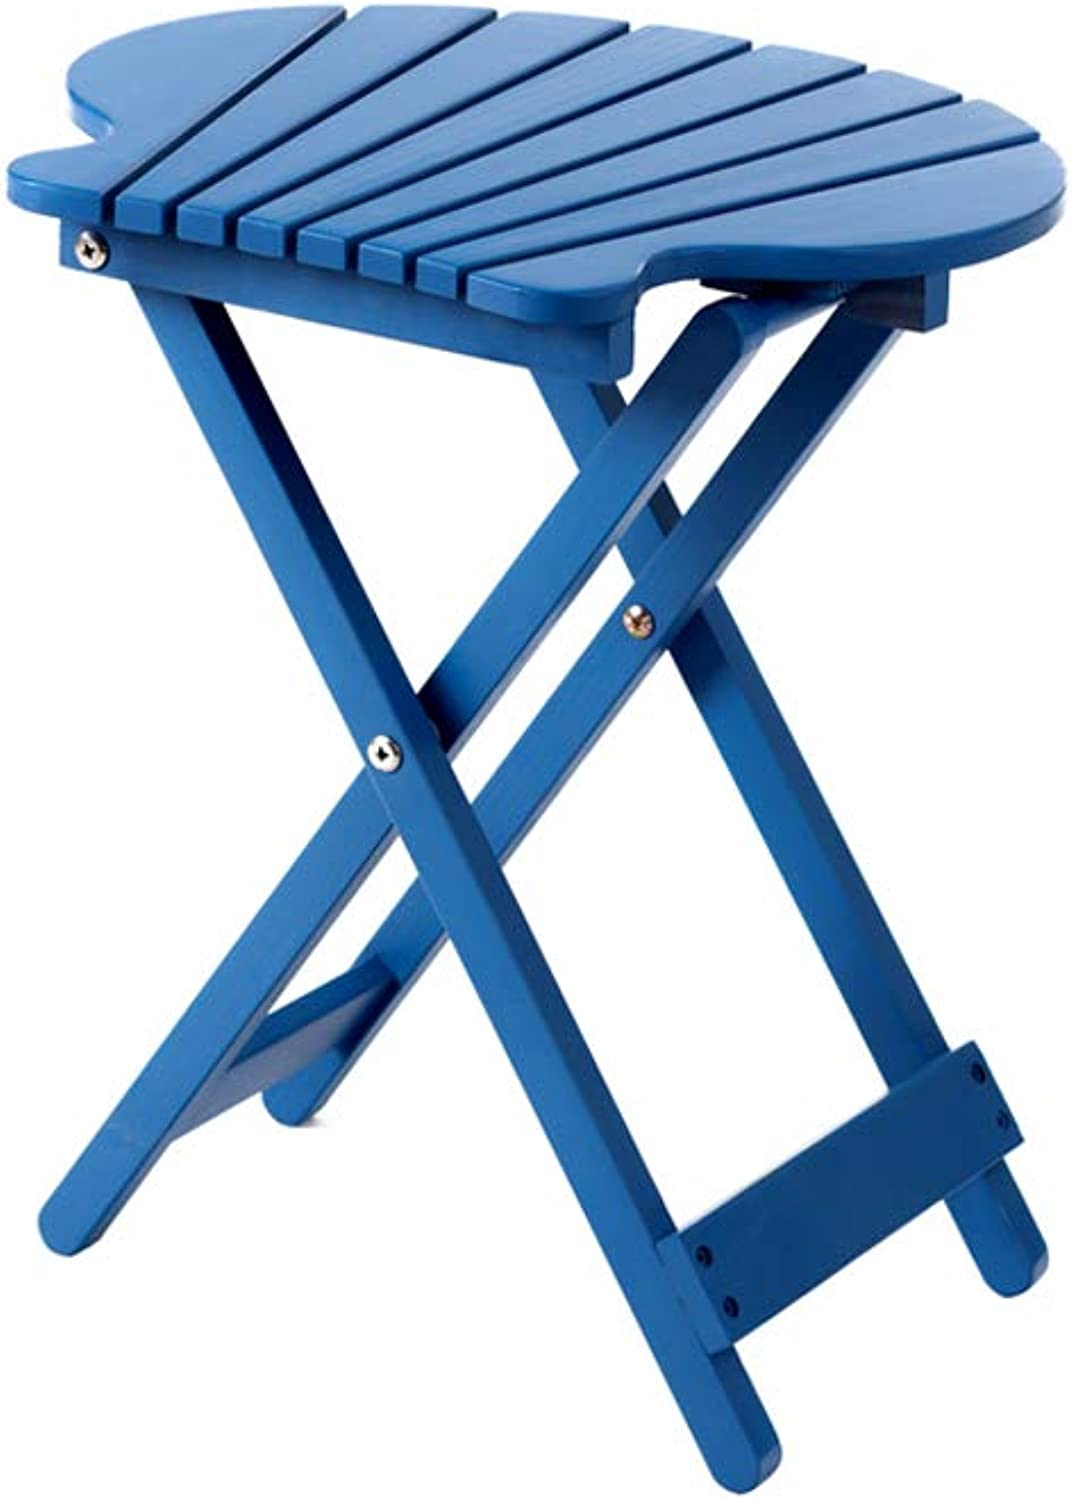 Flower Stand, Solid Wood Foldable Plant Stand Multi-Level Indoor Balcony Floor Fleshy Flower Pot Rack (color   bluee)